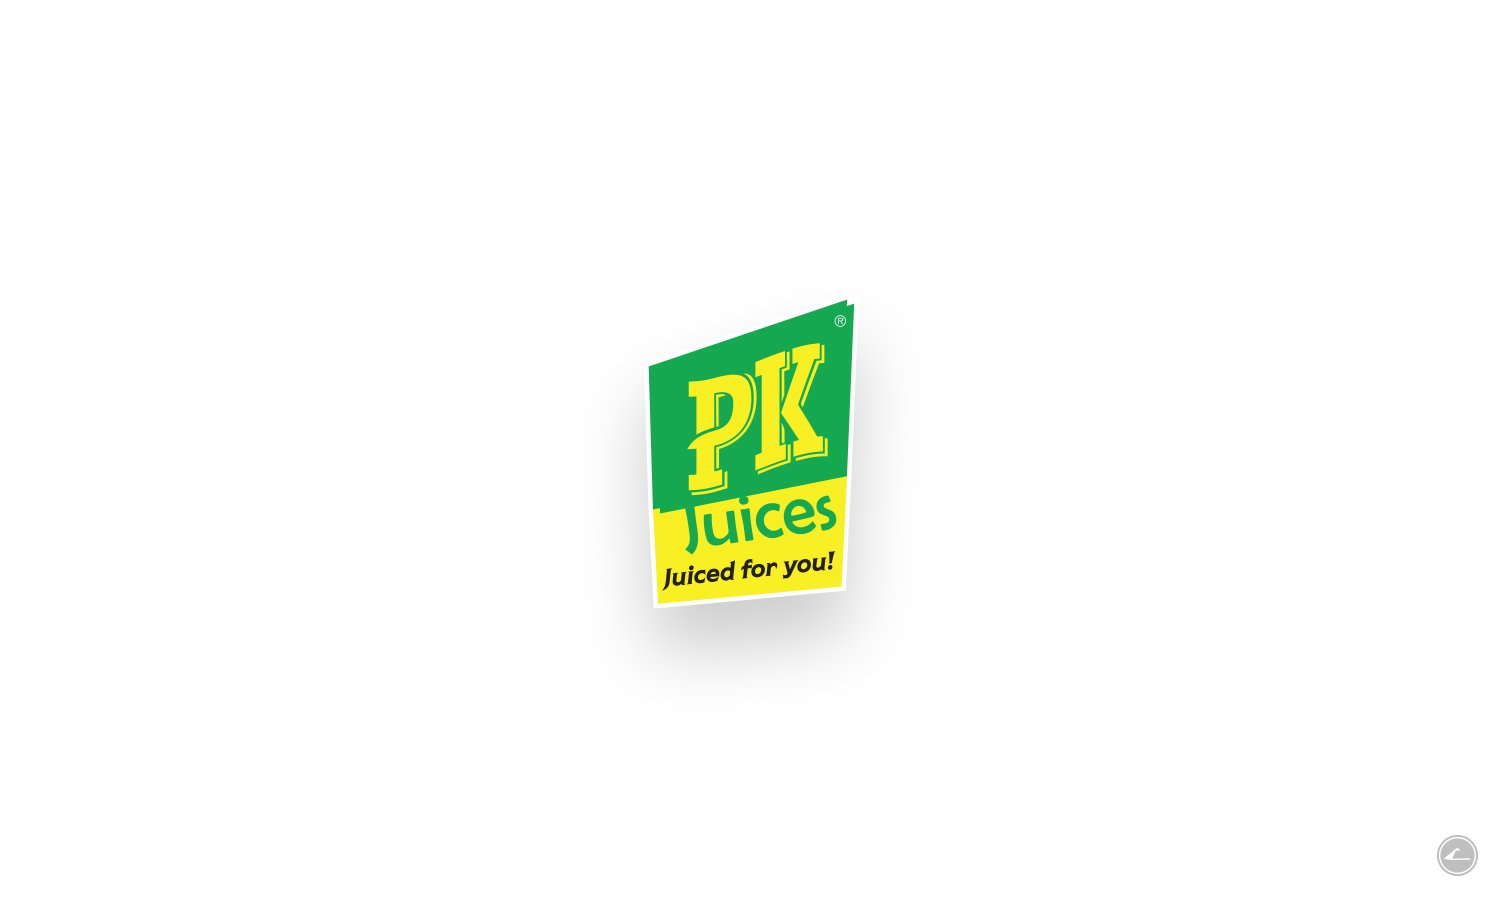 pk_juices-logo_1.1